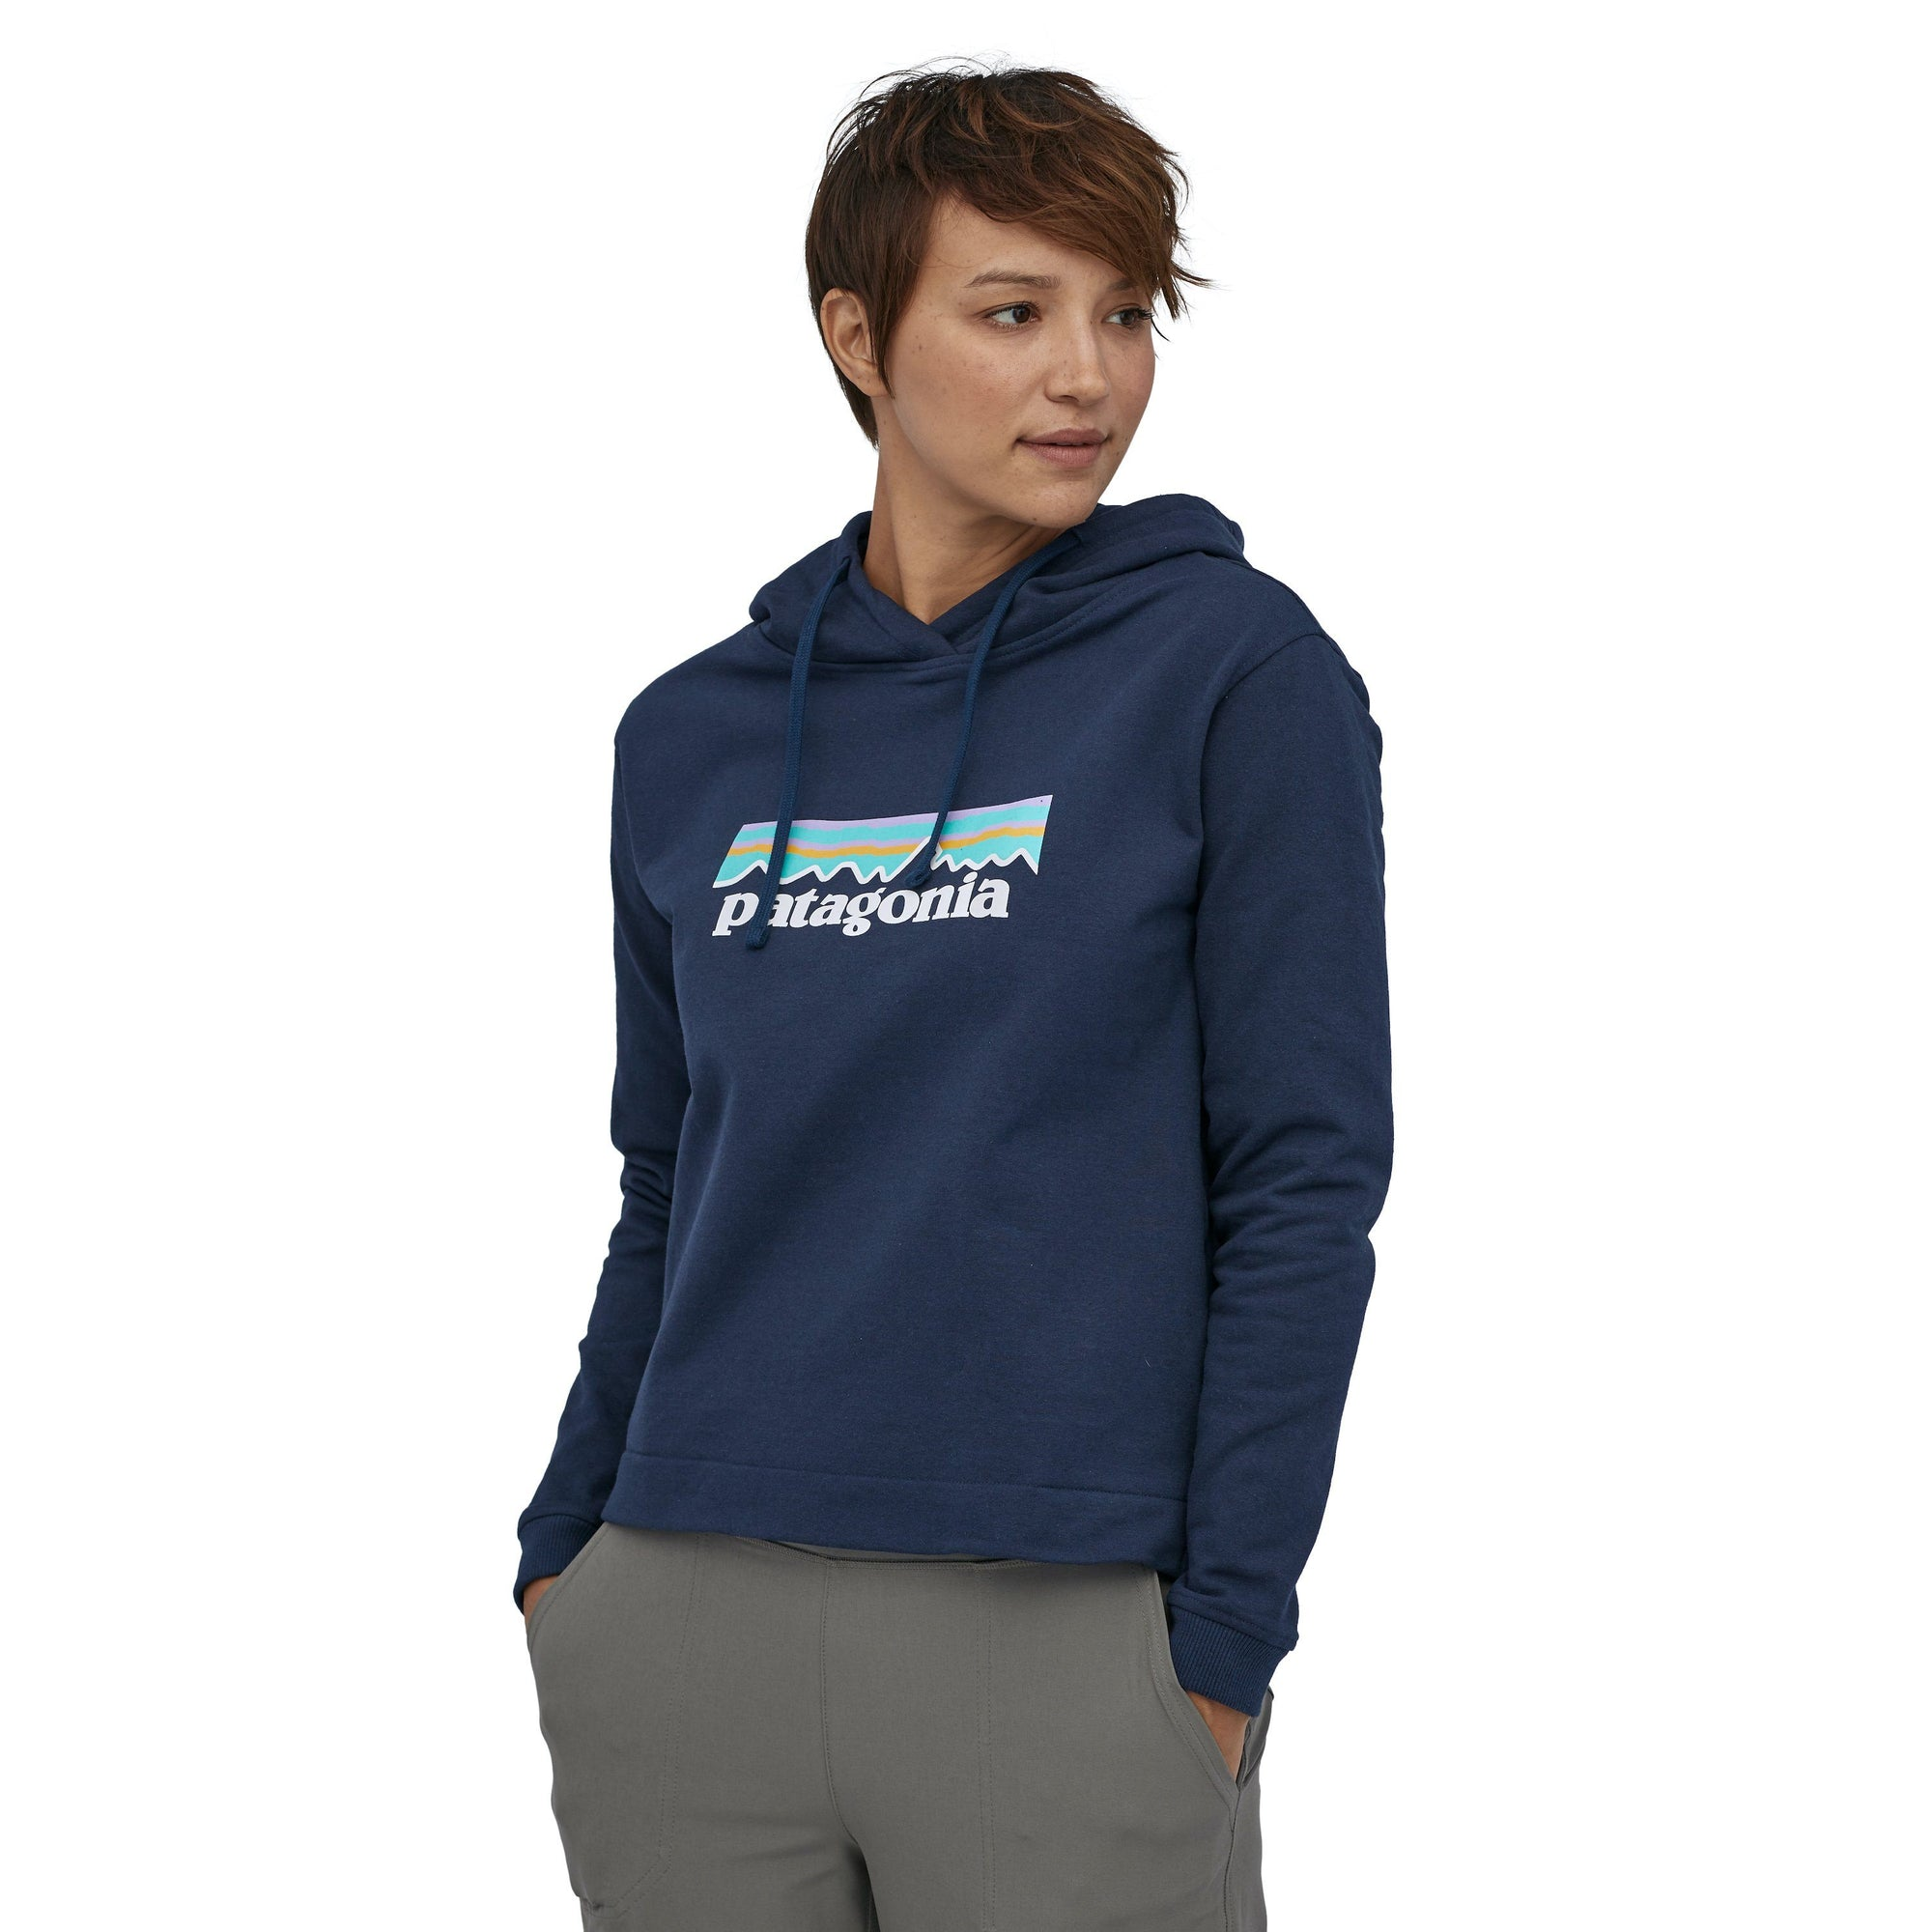 Patagonia - W's Pastel P-6 Logo Uprisal Hoody - Recycled cotton / Recycled polyester - Weekendbee - sustainable sportswear